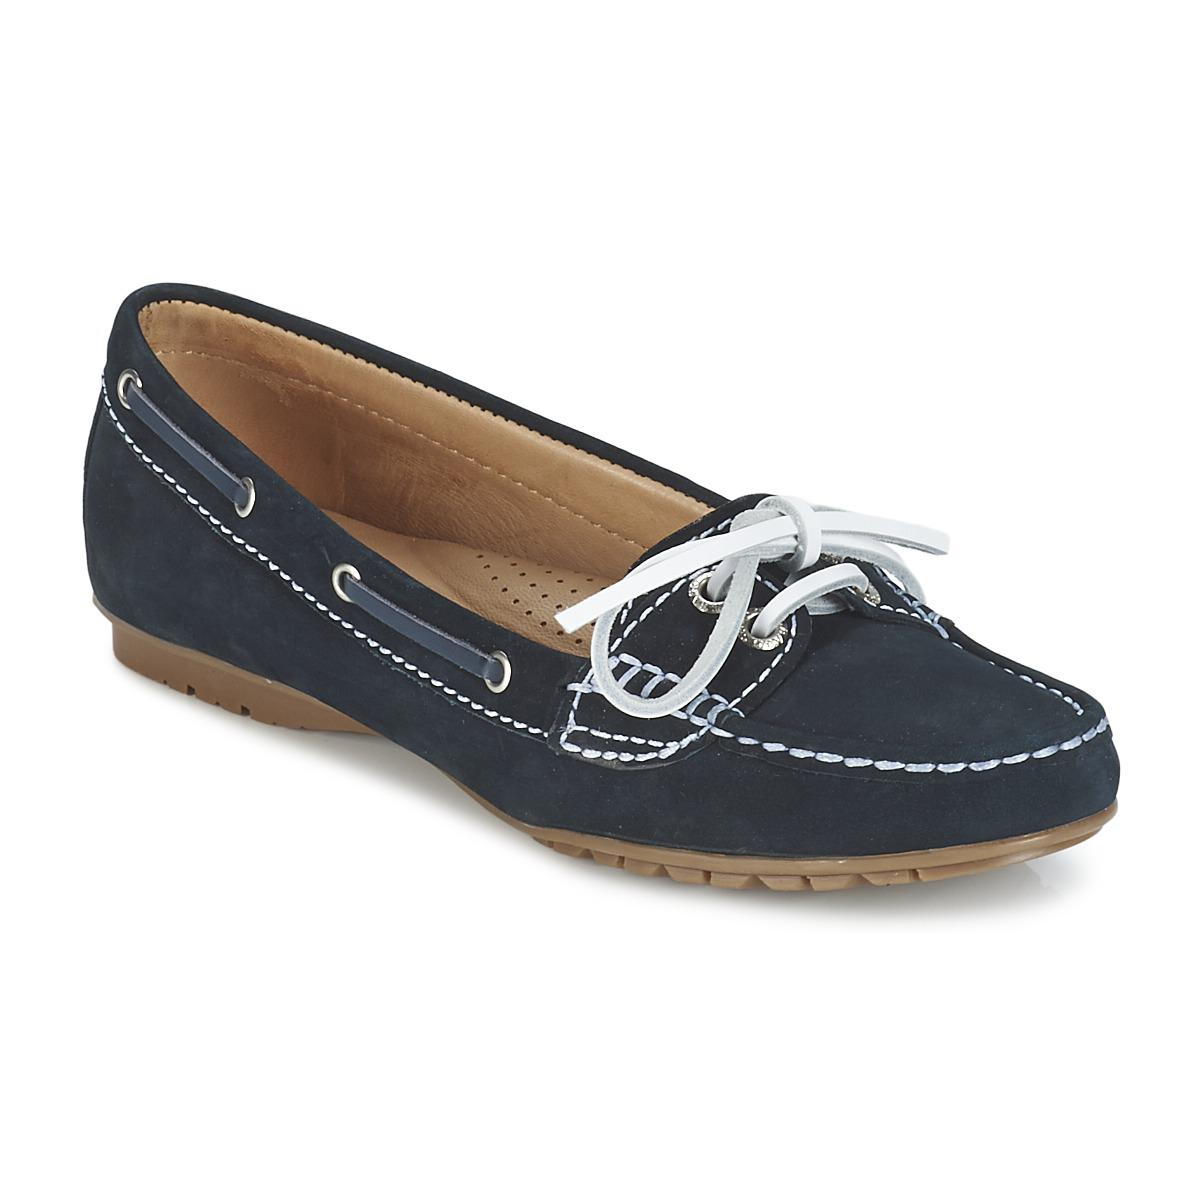 new product 4d5a7 f1c67 sebago-blue-Meriden-Two-Eye-Womens-Loafers-Casual-Shoes-In-Blue.jpeg